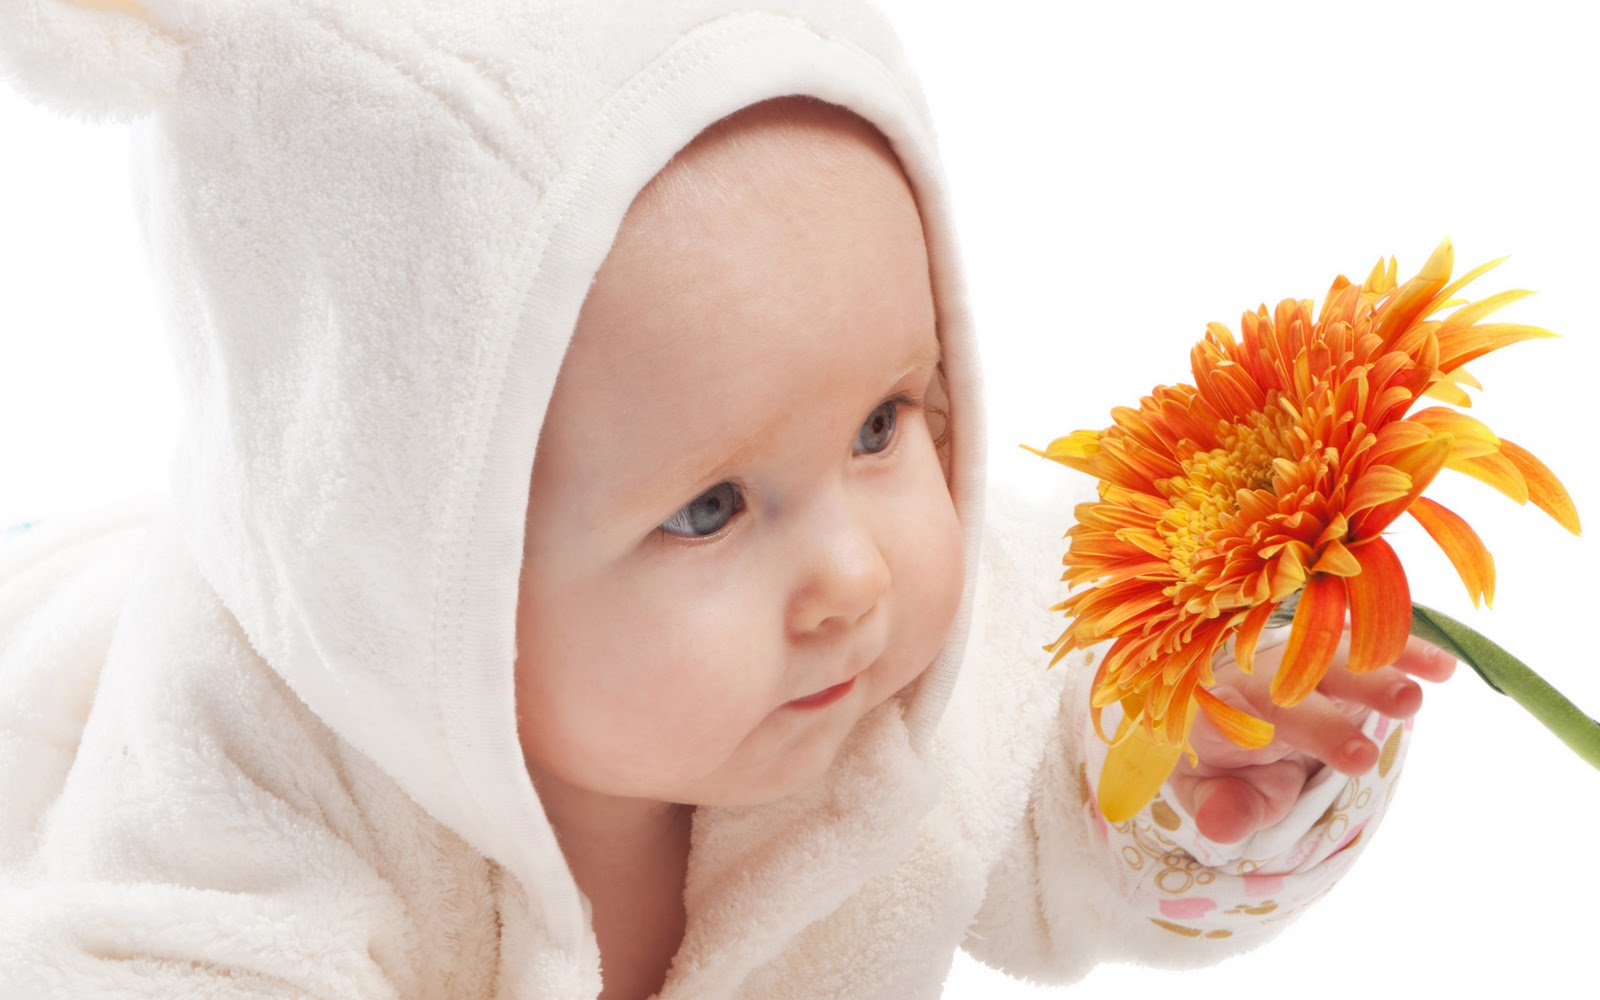 Cute Baby Girl Wallpapers Free Download: Babbies Wallpapers Free Download, Cute Kids Wallpapers